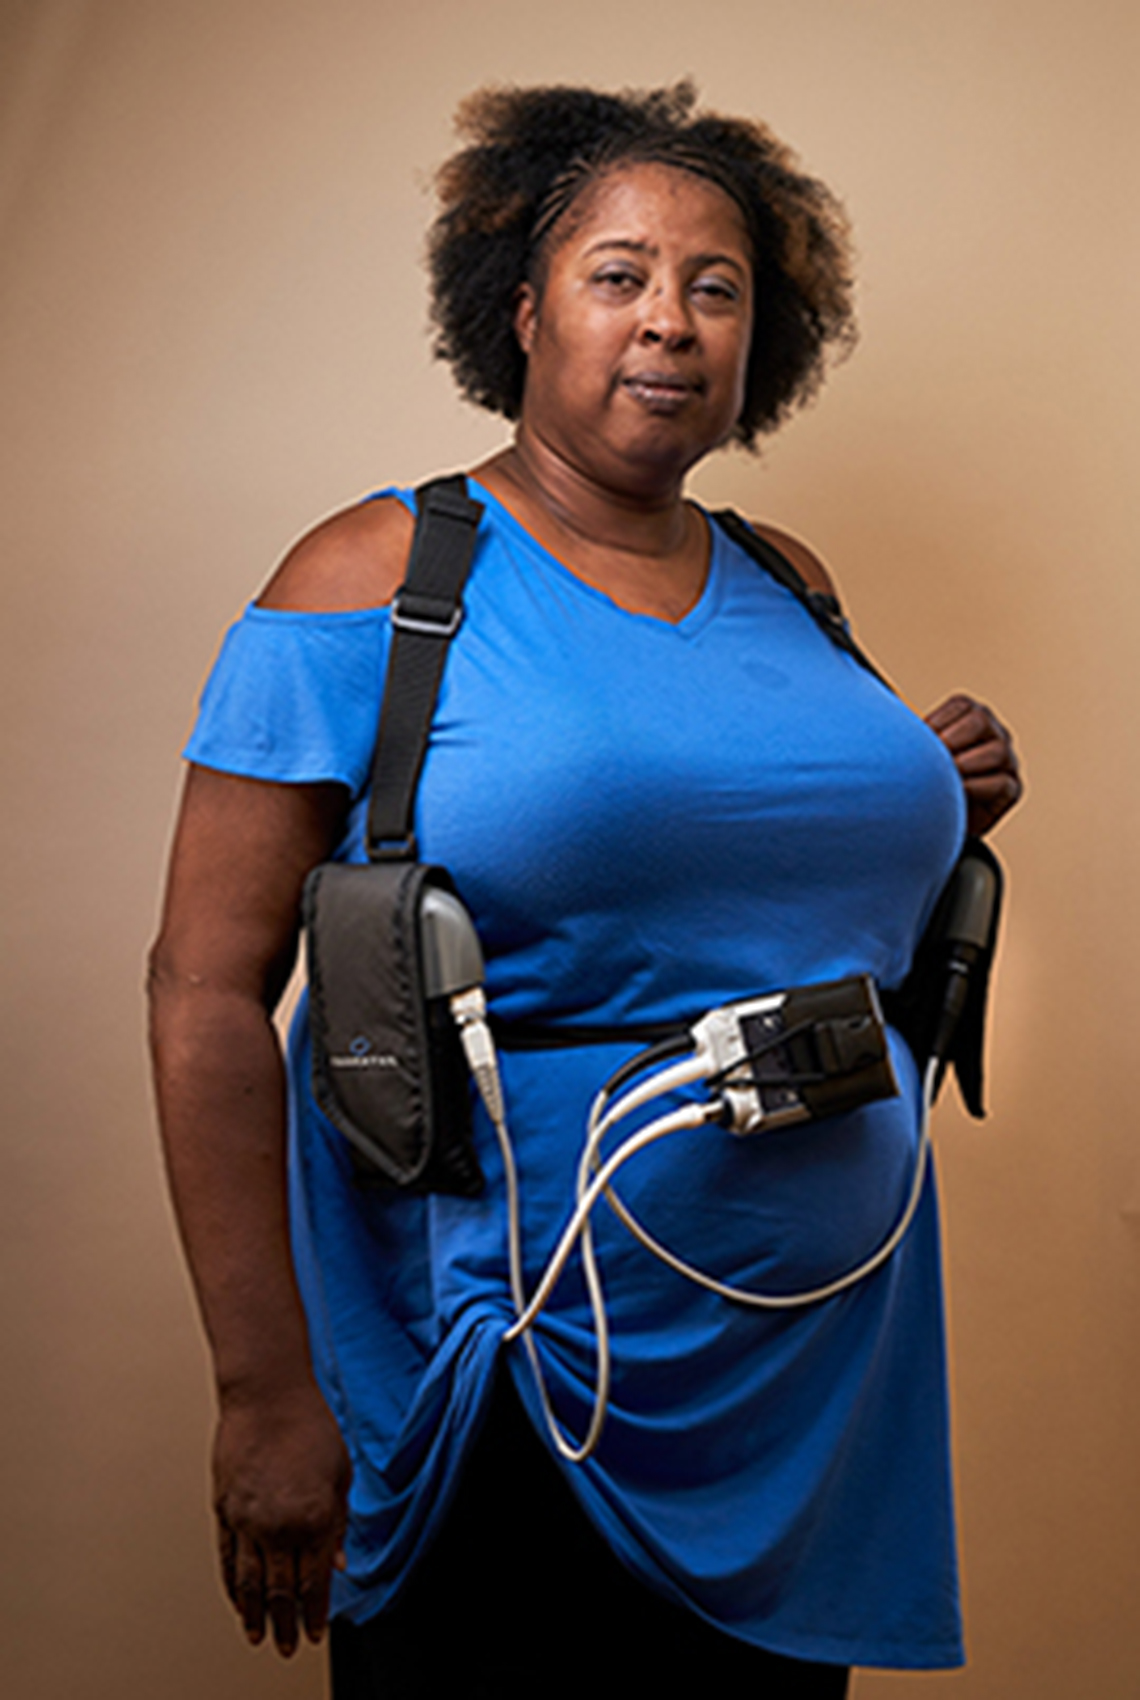 Battery Powered Pump Helps People With Heart Failure